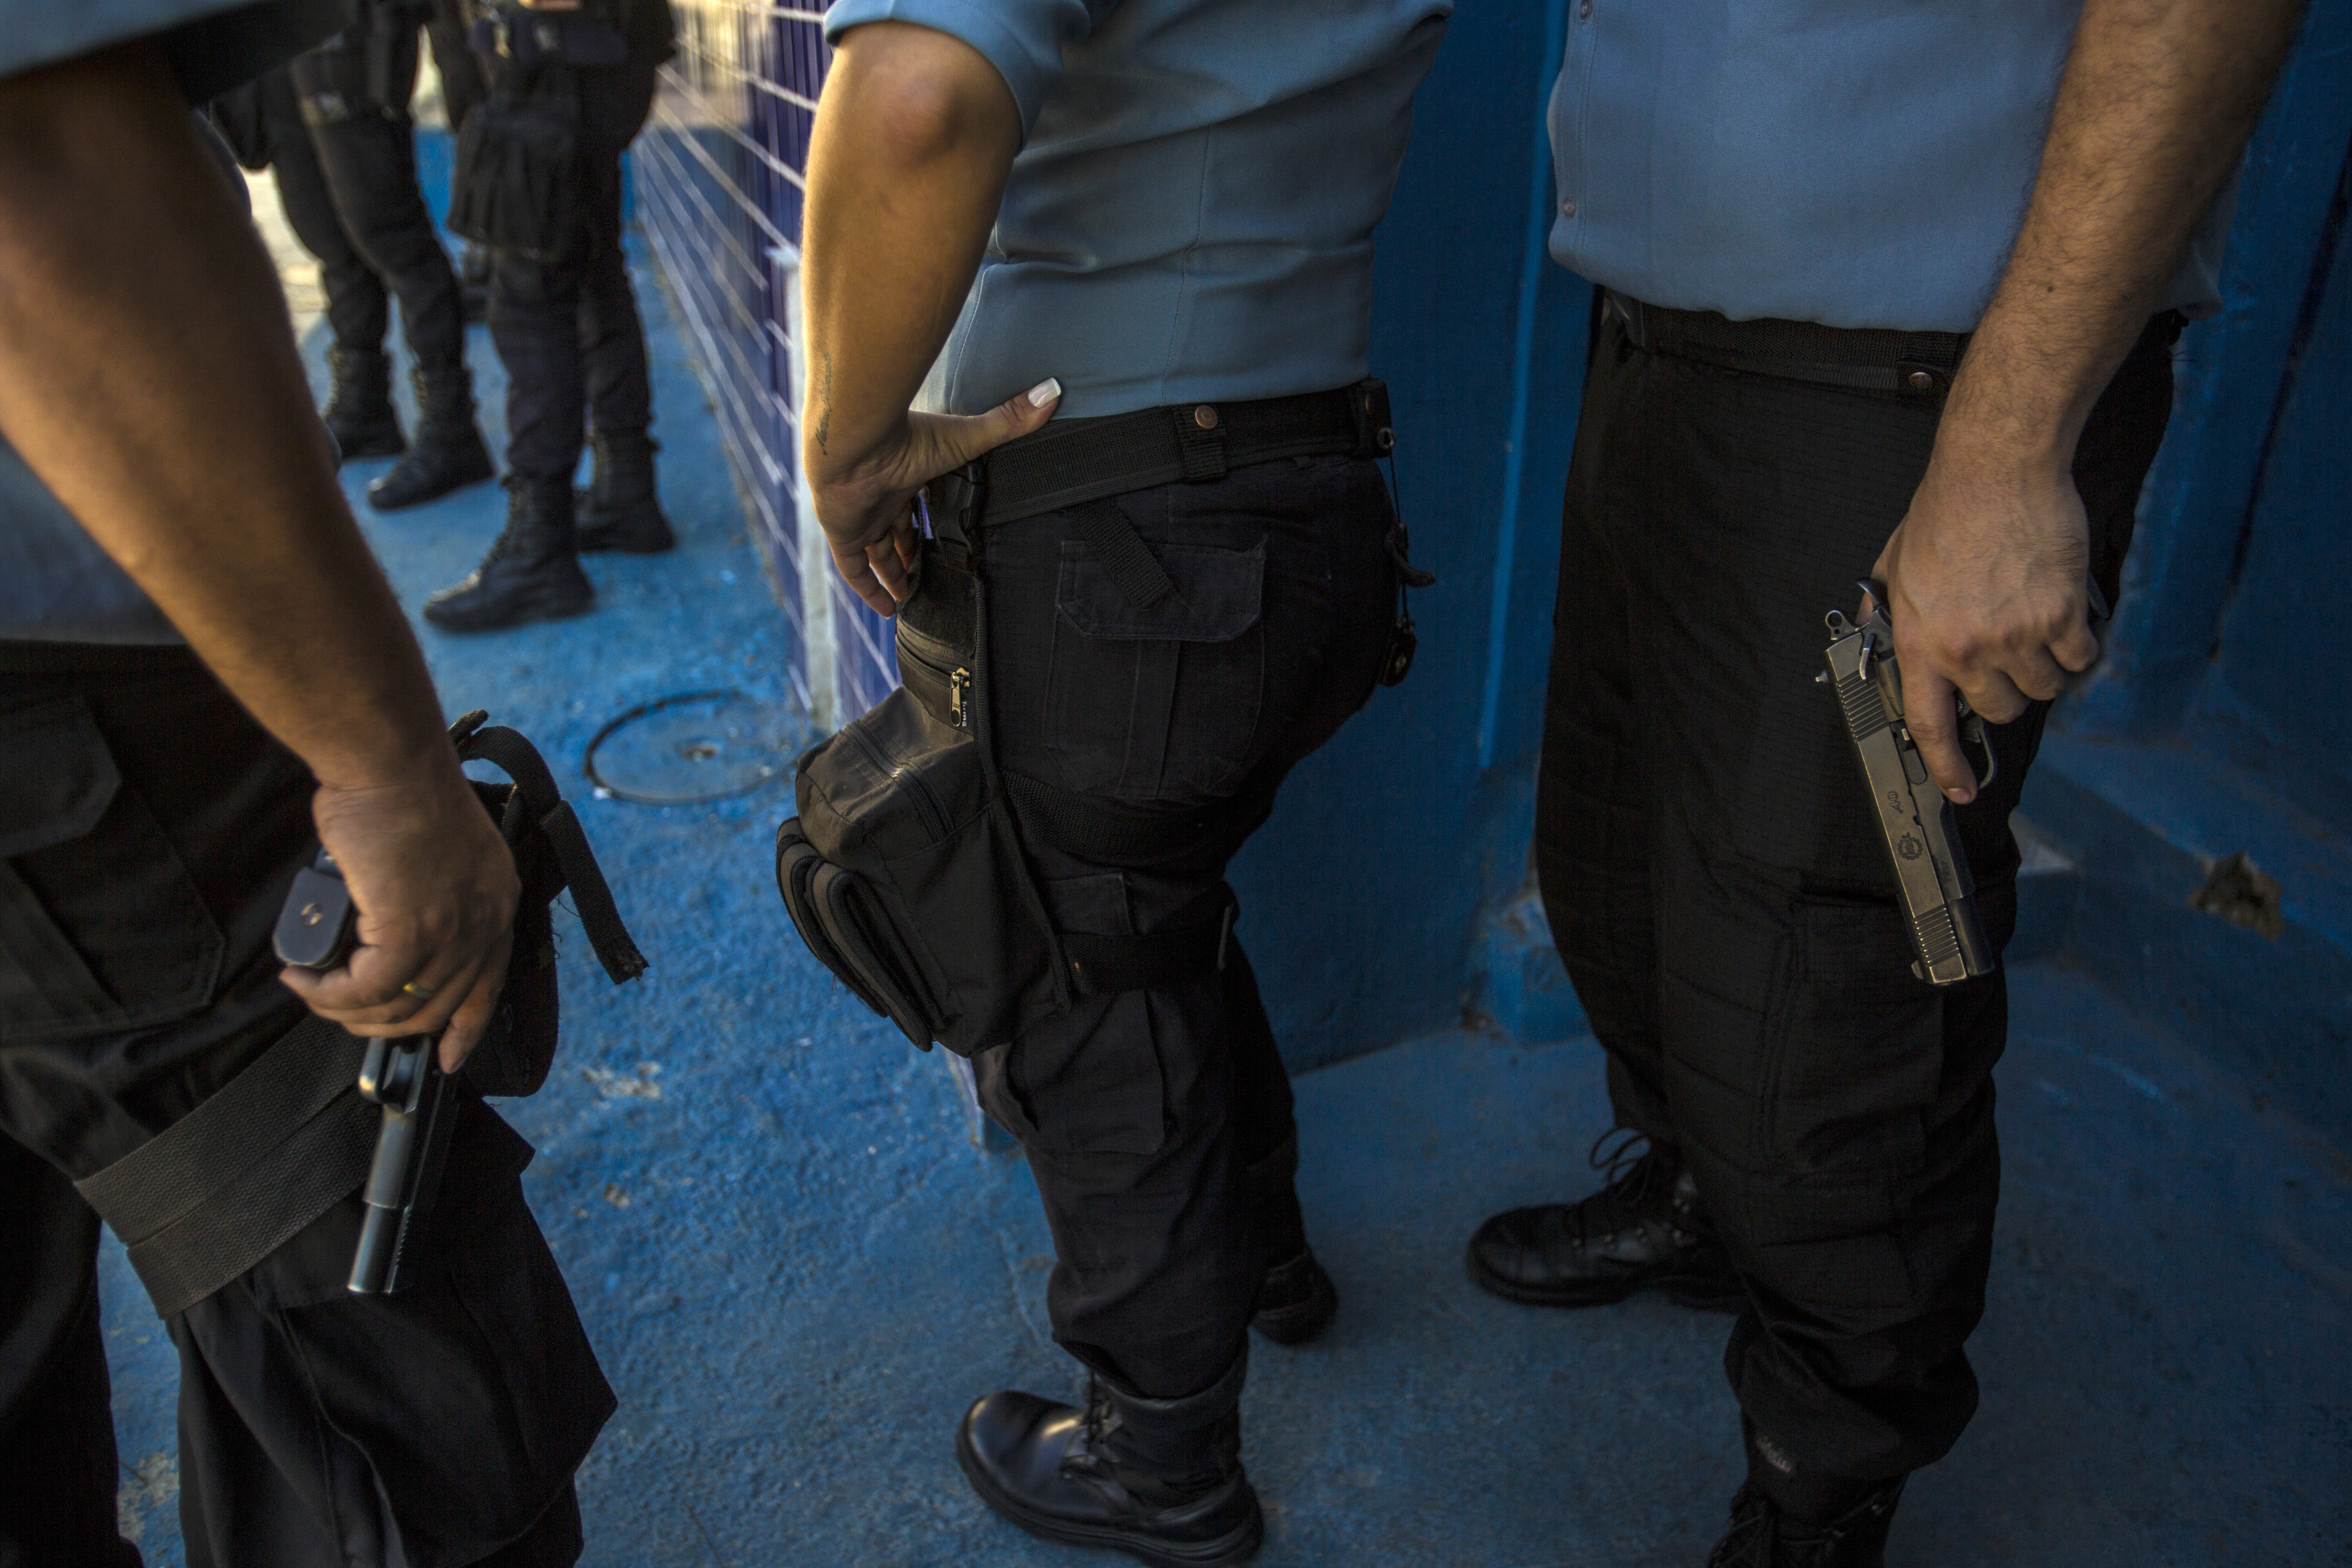 Armed officers from the Pacifying Police Unit (UPP) patrol in the Providencia favela of Rio de Janeiro, Brazil, on Monday, June 22, 2015.